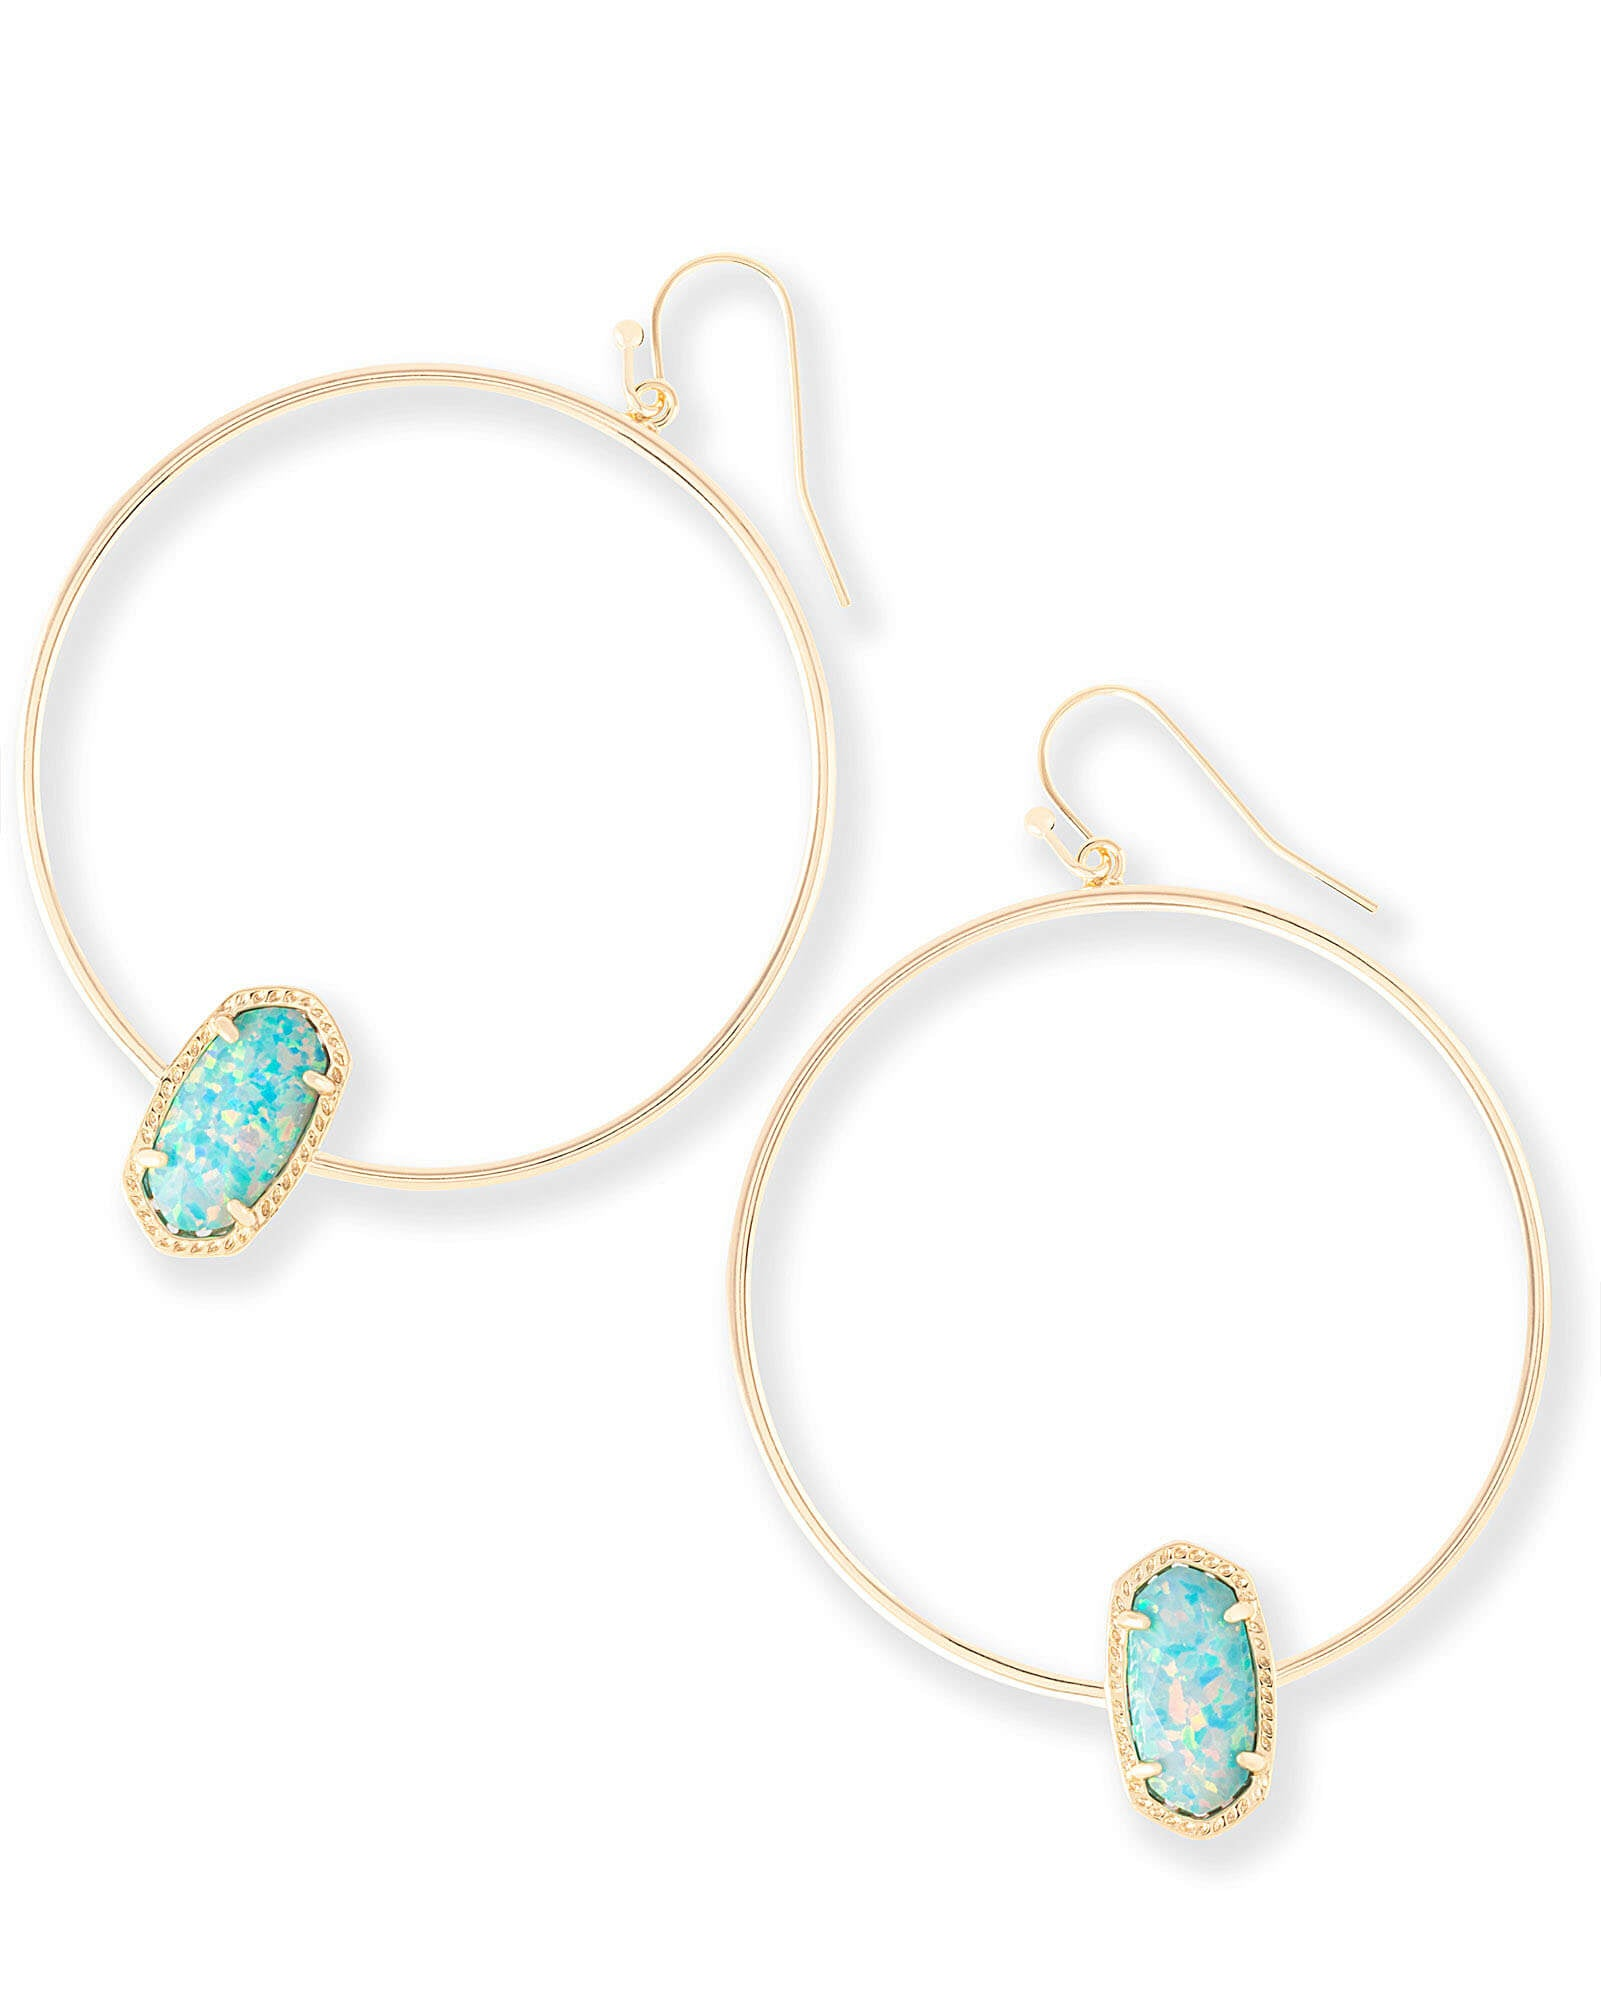 Elora Hoop Earrings in Aqua Kyocera Opal